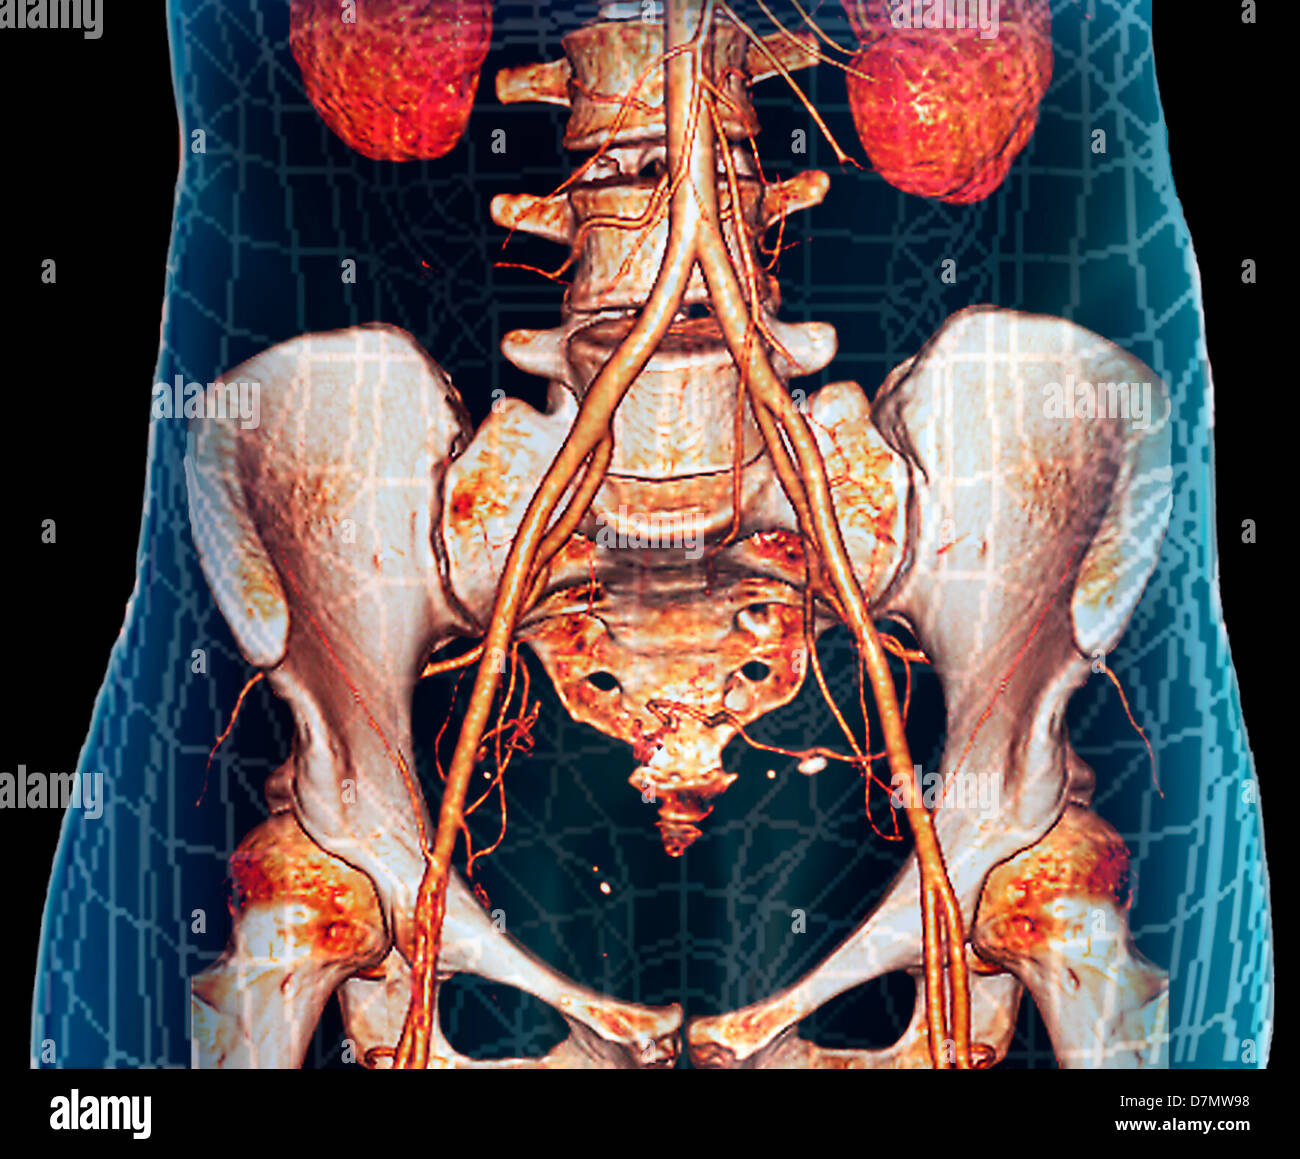 3d Ct Scan Stockfotos & 3d Ct Scan Bilder - Alamy